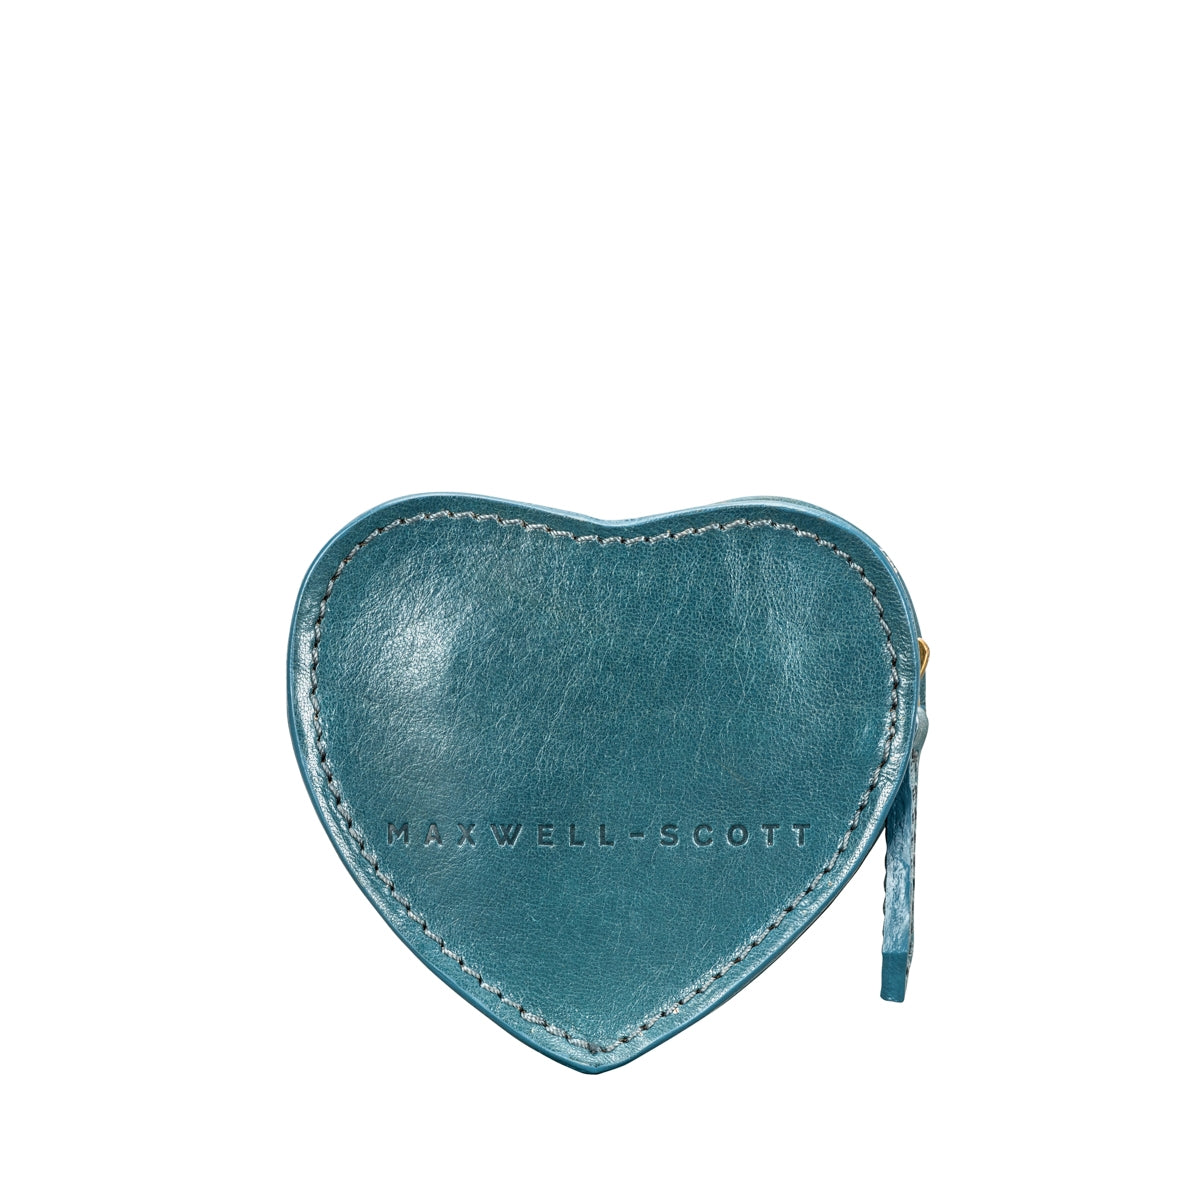 Image 3 of the 'Mirabella' Petrol Leather Heart-Shaped Coin Purse